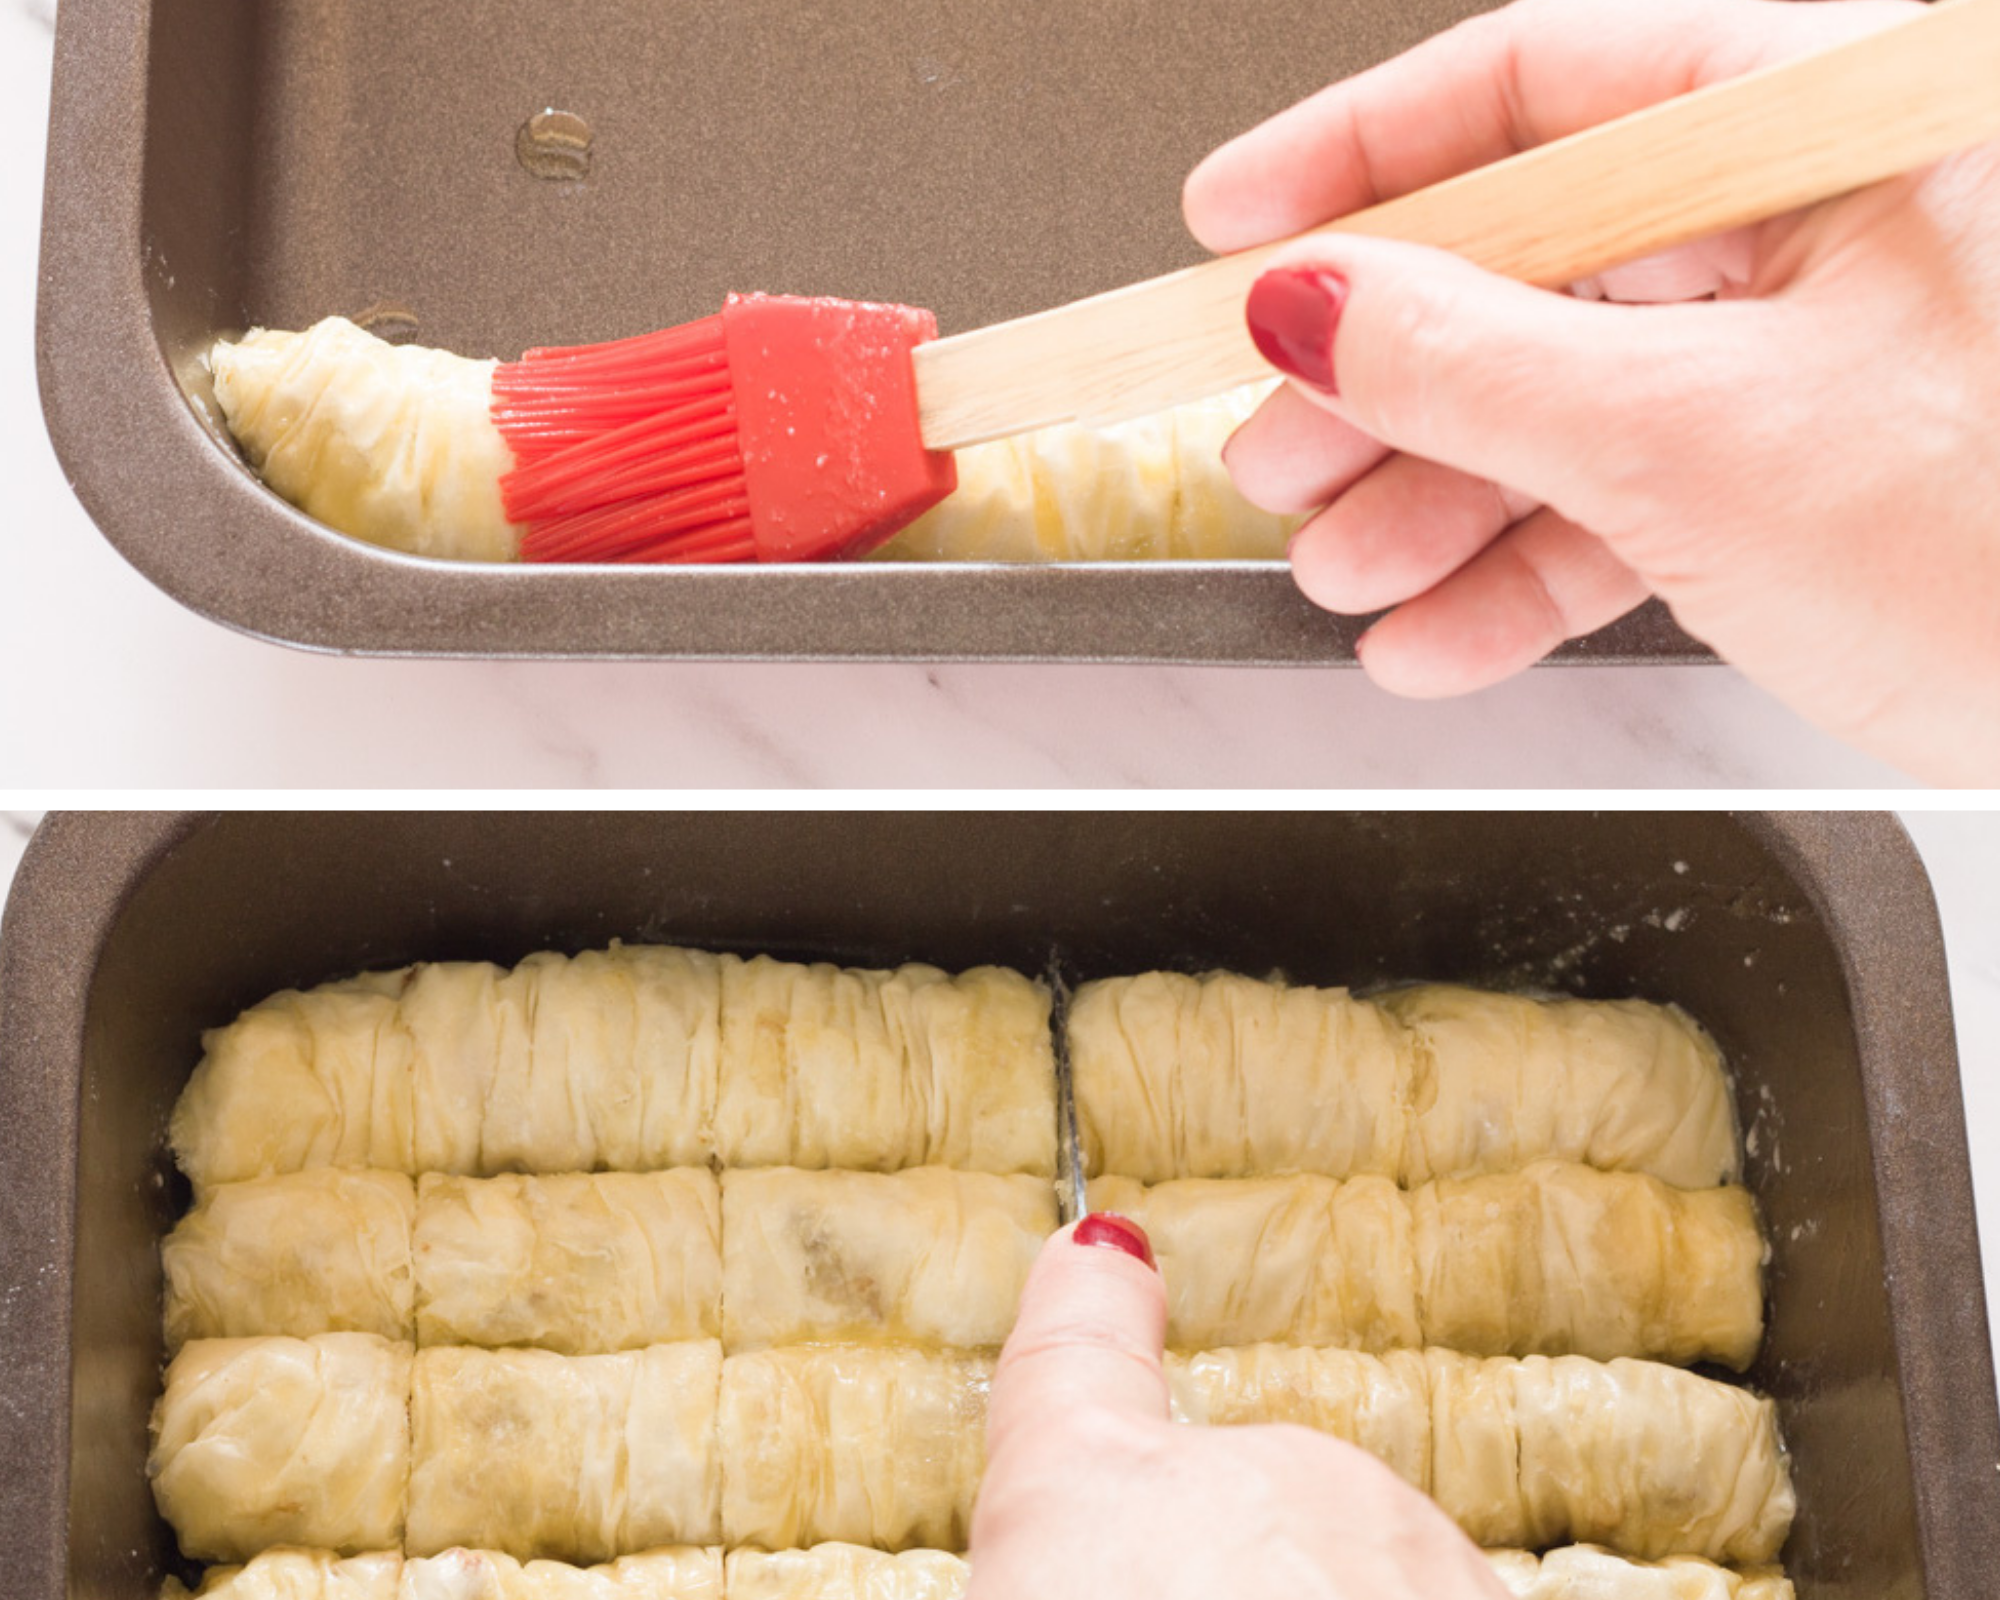 buttering a saragli baklava roll in a pan and then cutting them into small rolls